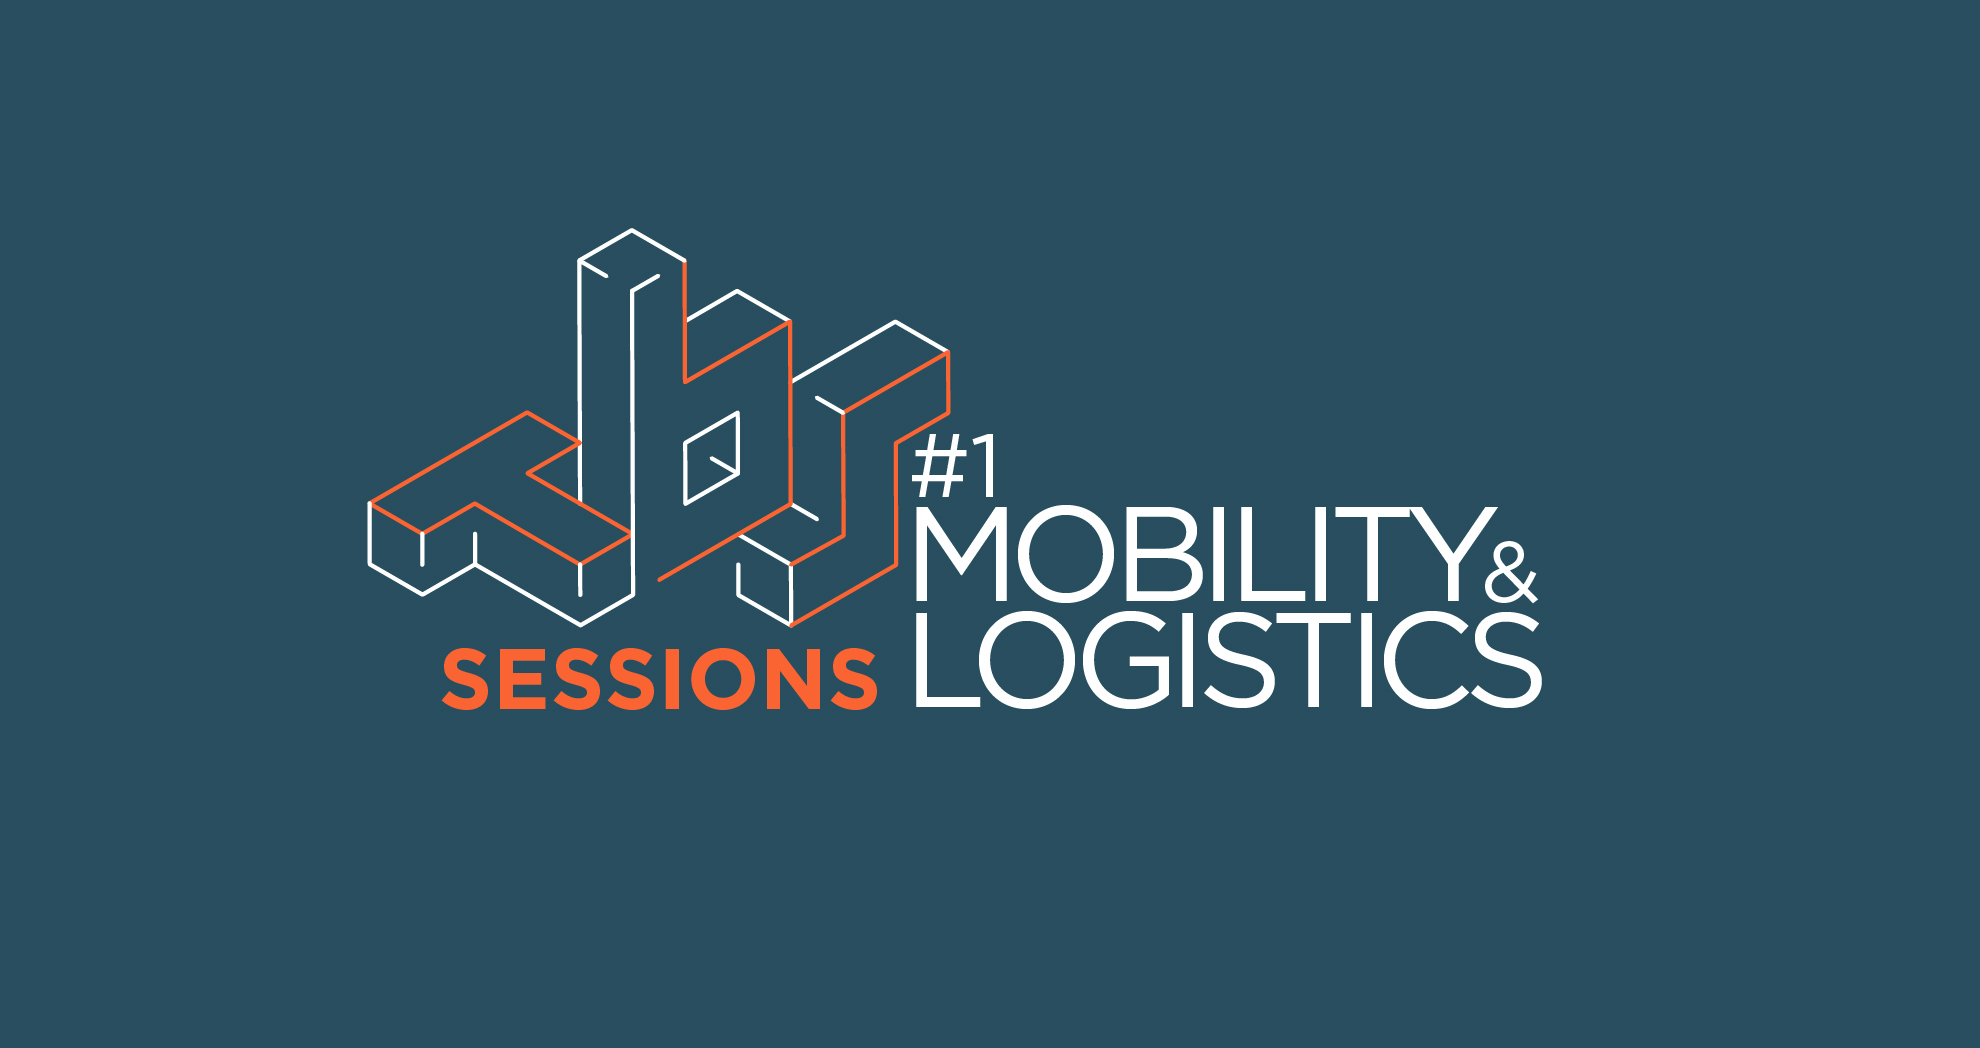 Headaches & Opportunities of the Logistics & Mobility Industry